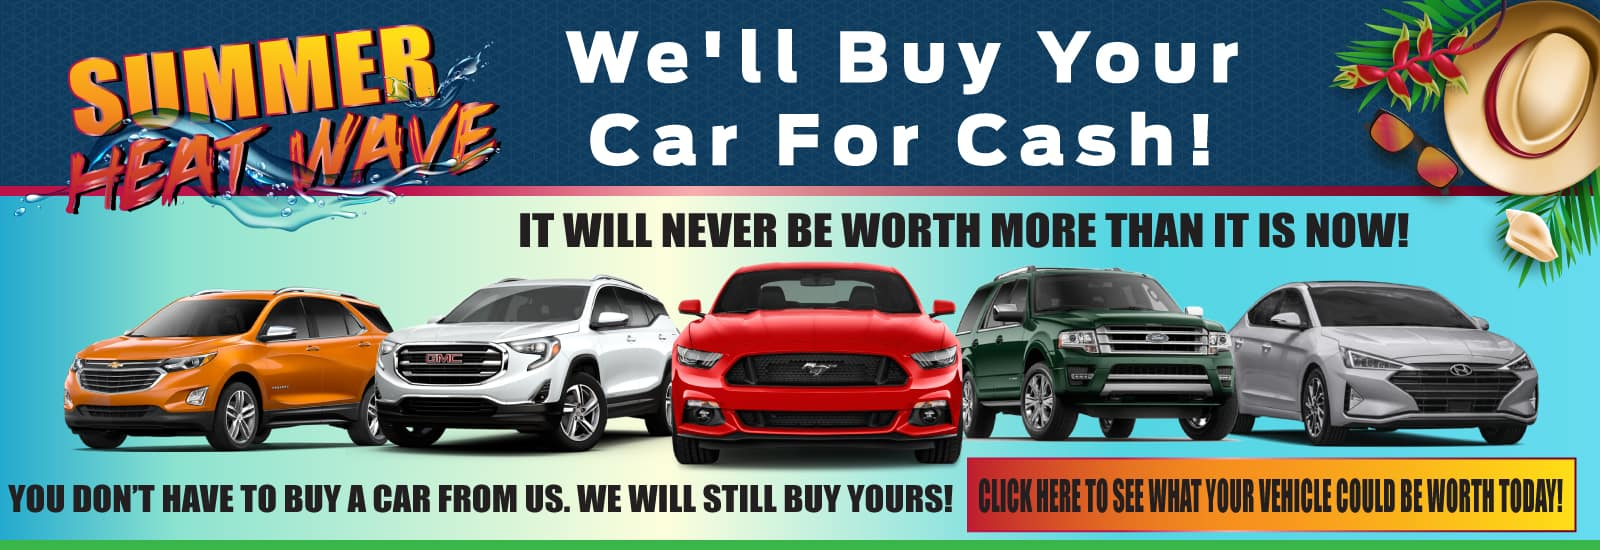 We-Will-Buy-Your-Car-Web-Banner-1600×550